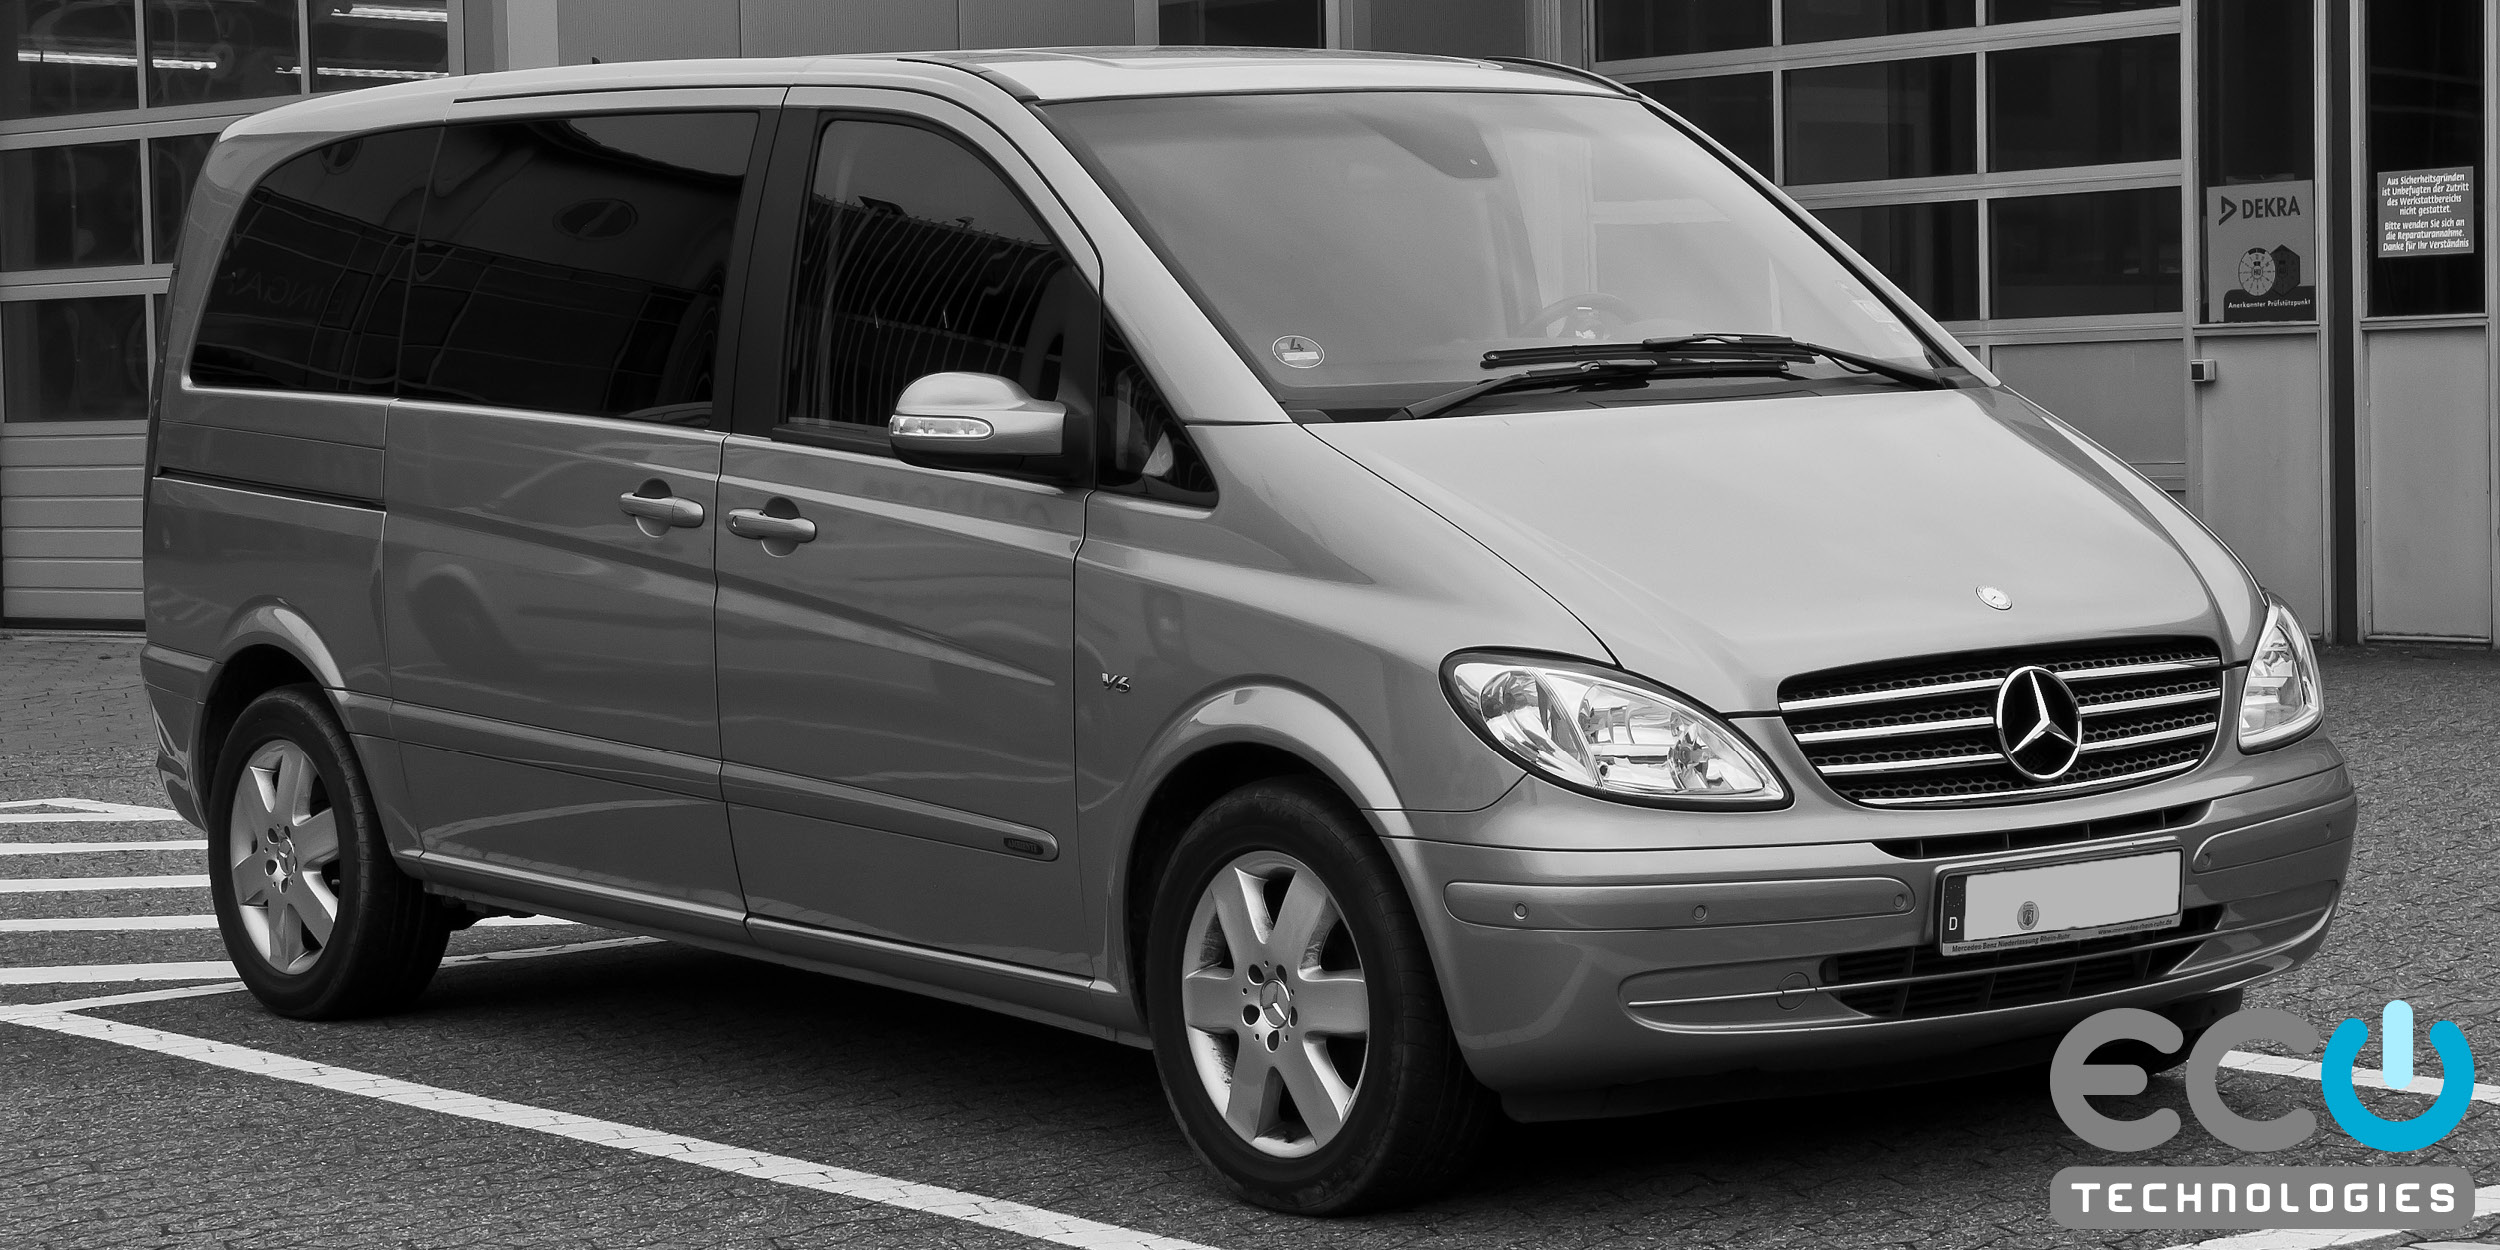 DPF Removal for 2008 Mercedes Benz Vito 120 3 0 CDI | Ecu